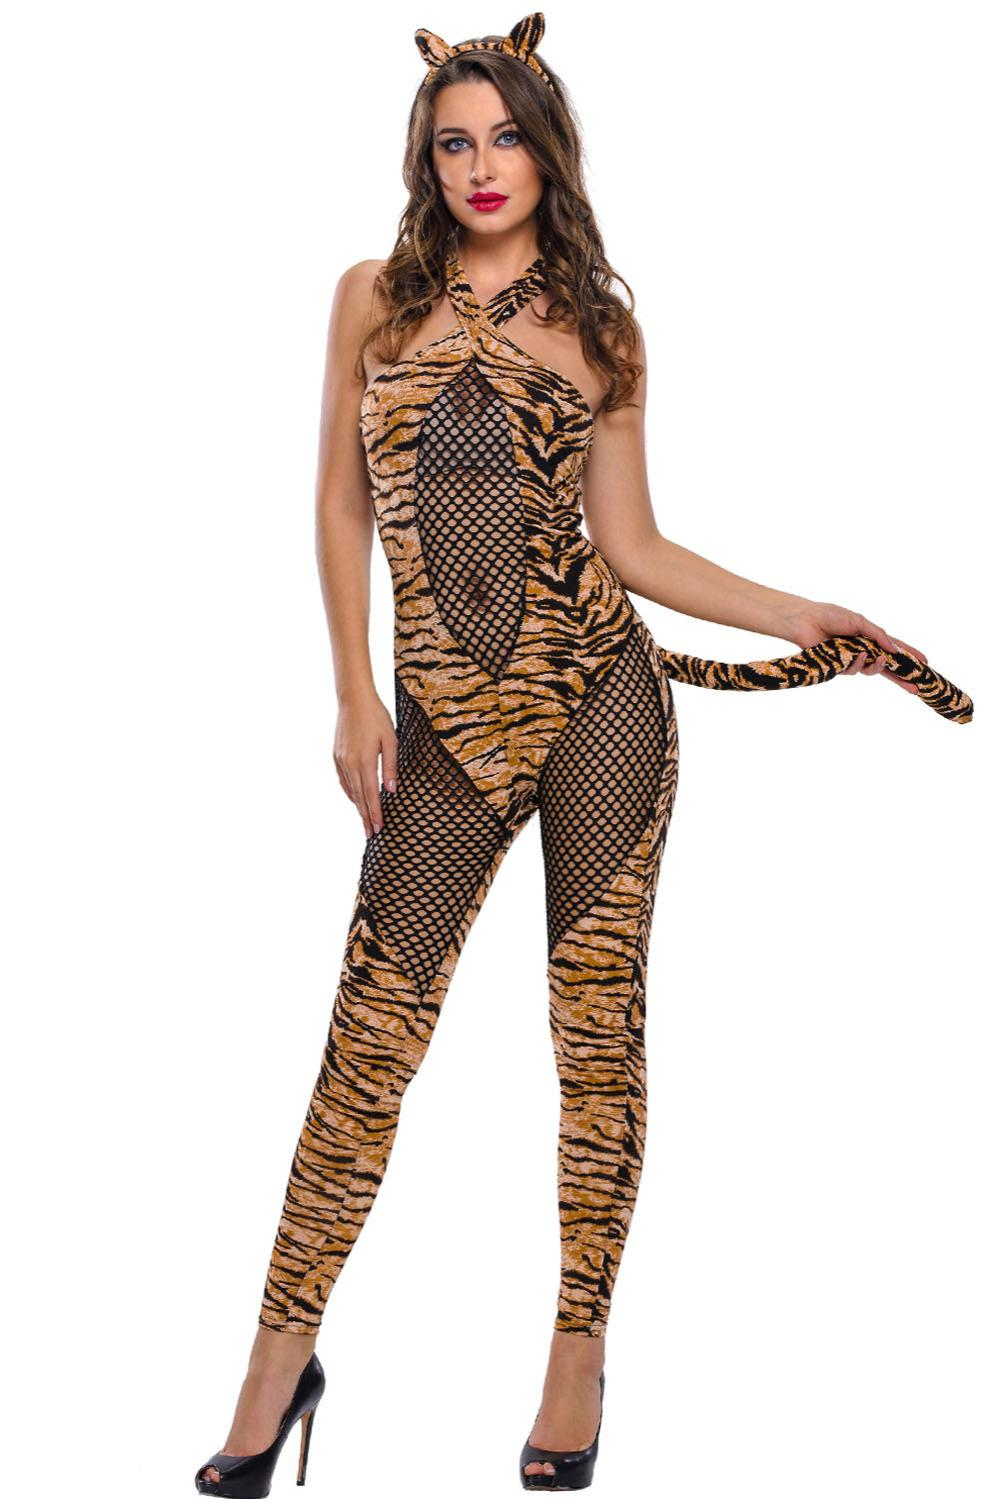 ddd9e23e6 Women Sexy Adult Tiger Costume Set 2016 Halloween Costumes Cosplay Fancy  Party Carnival Roleplay Sexy Cos Exotic Fairy Tales Group Halloween Costumes  For 3 ...